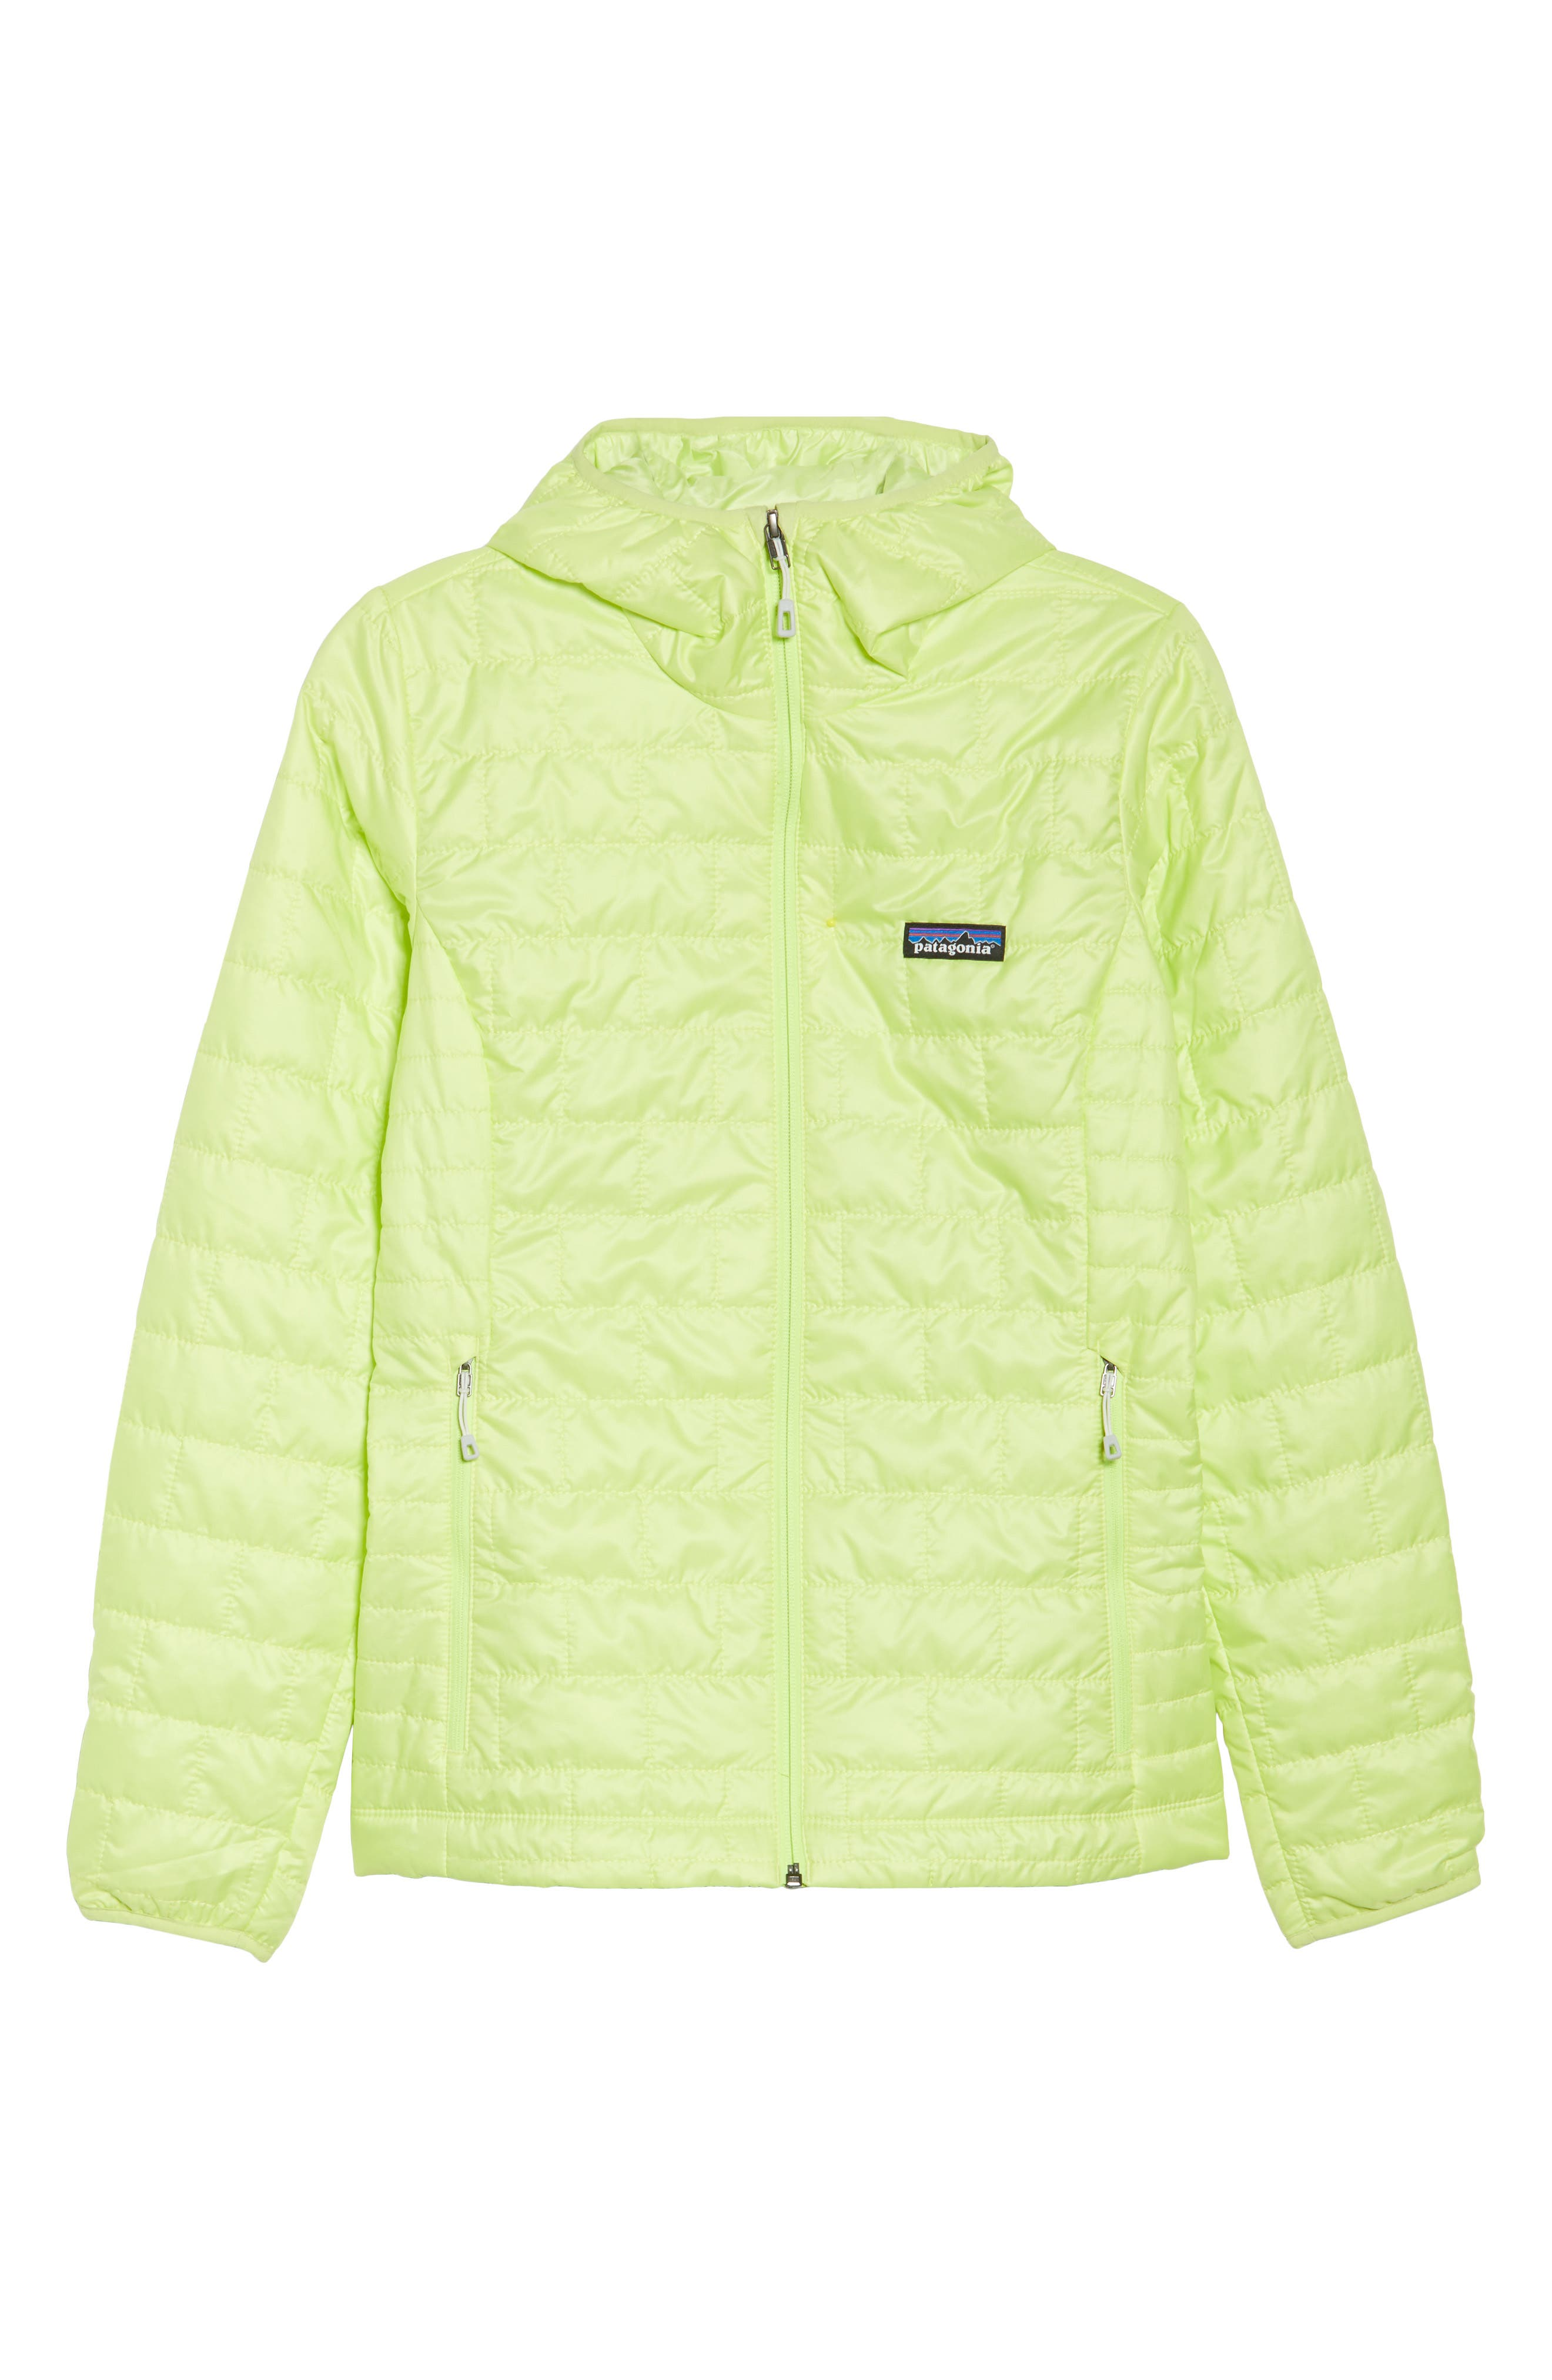 Nano Puff<sup>®</sup> Hooded Water Resistant Jacket,                             Alternate thumbnail 7, color,                             Celery Green